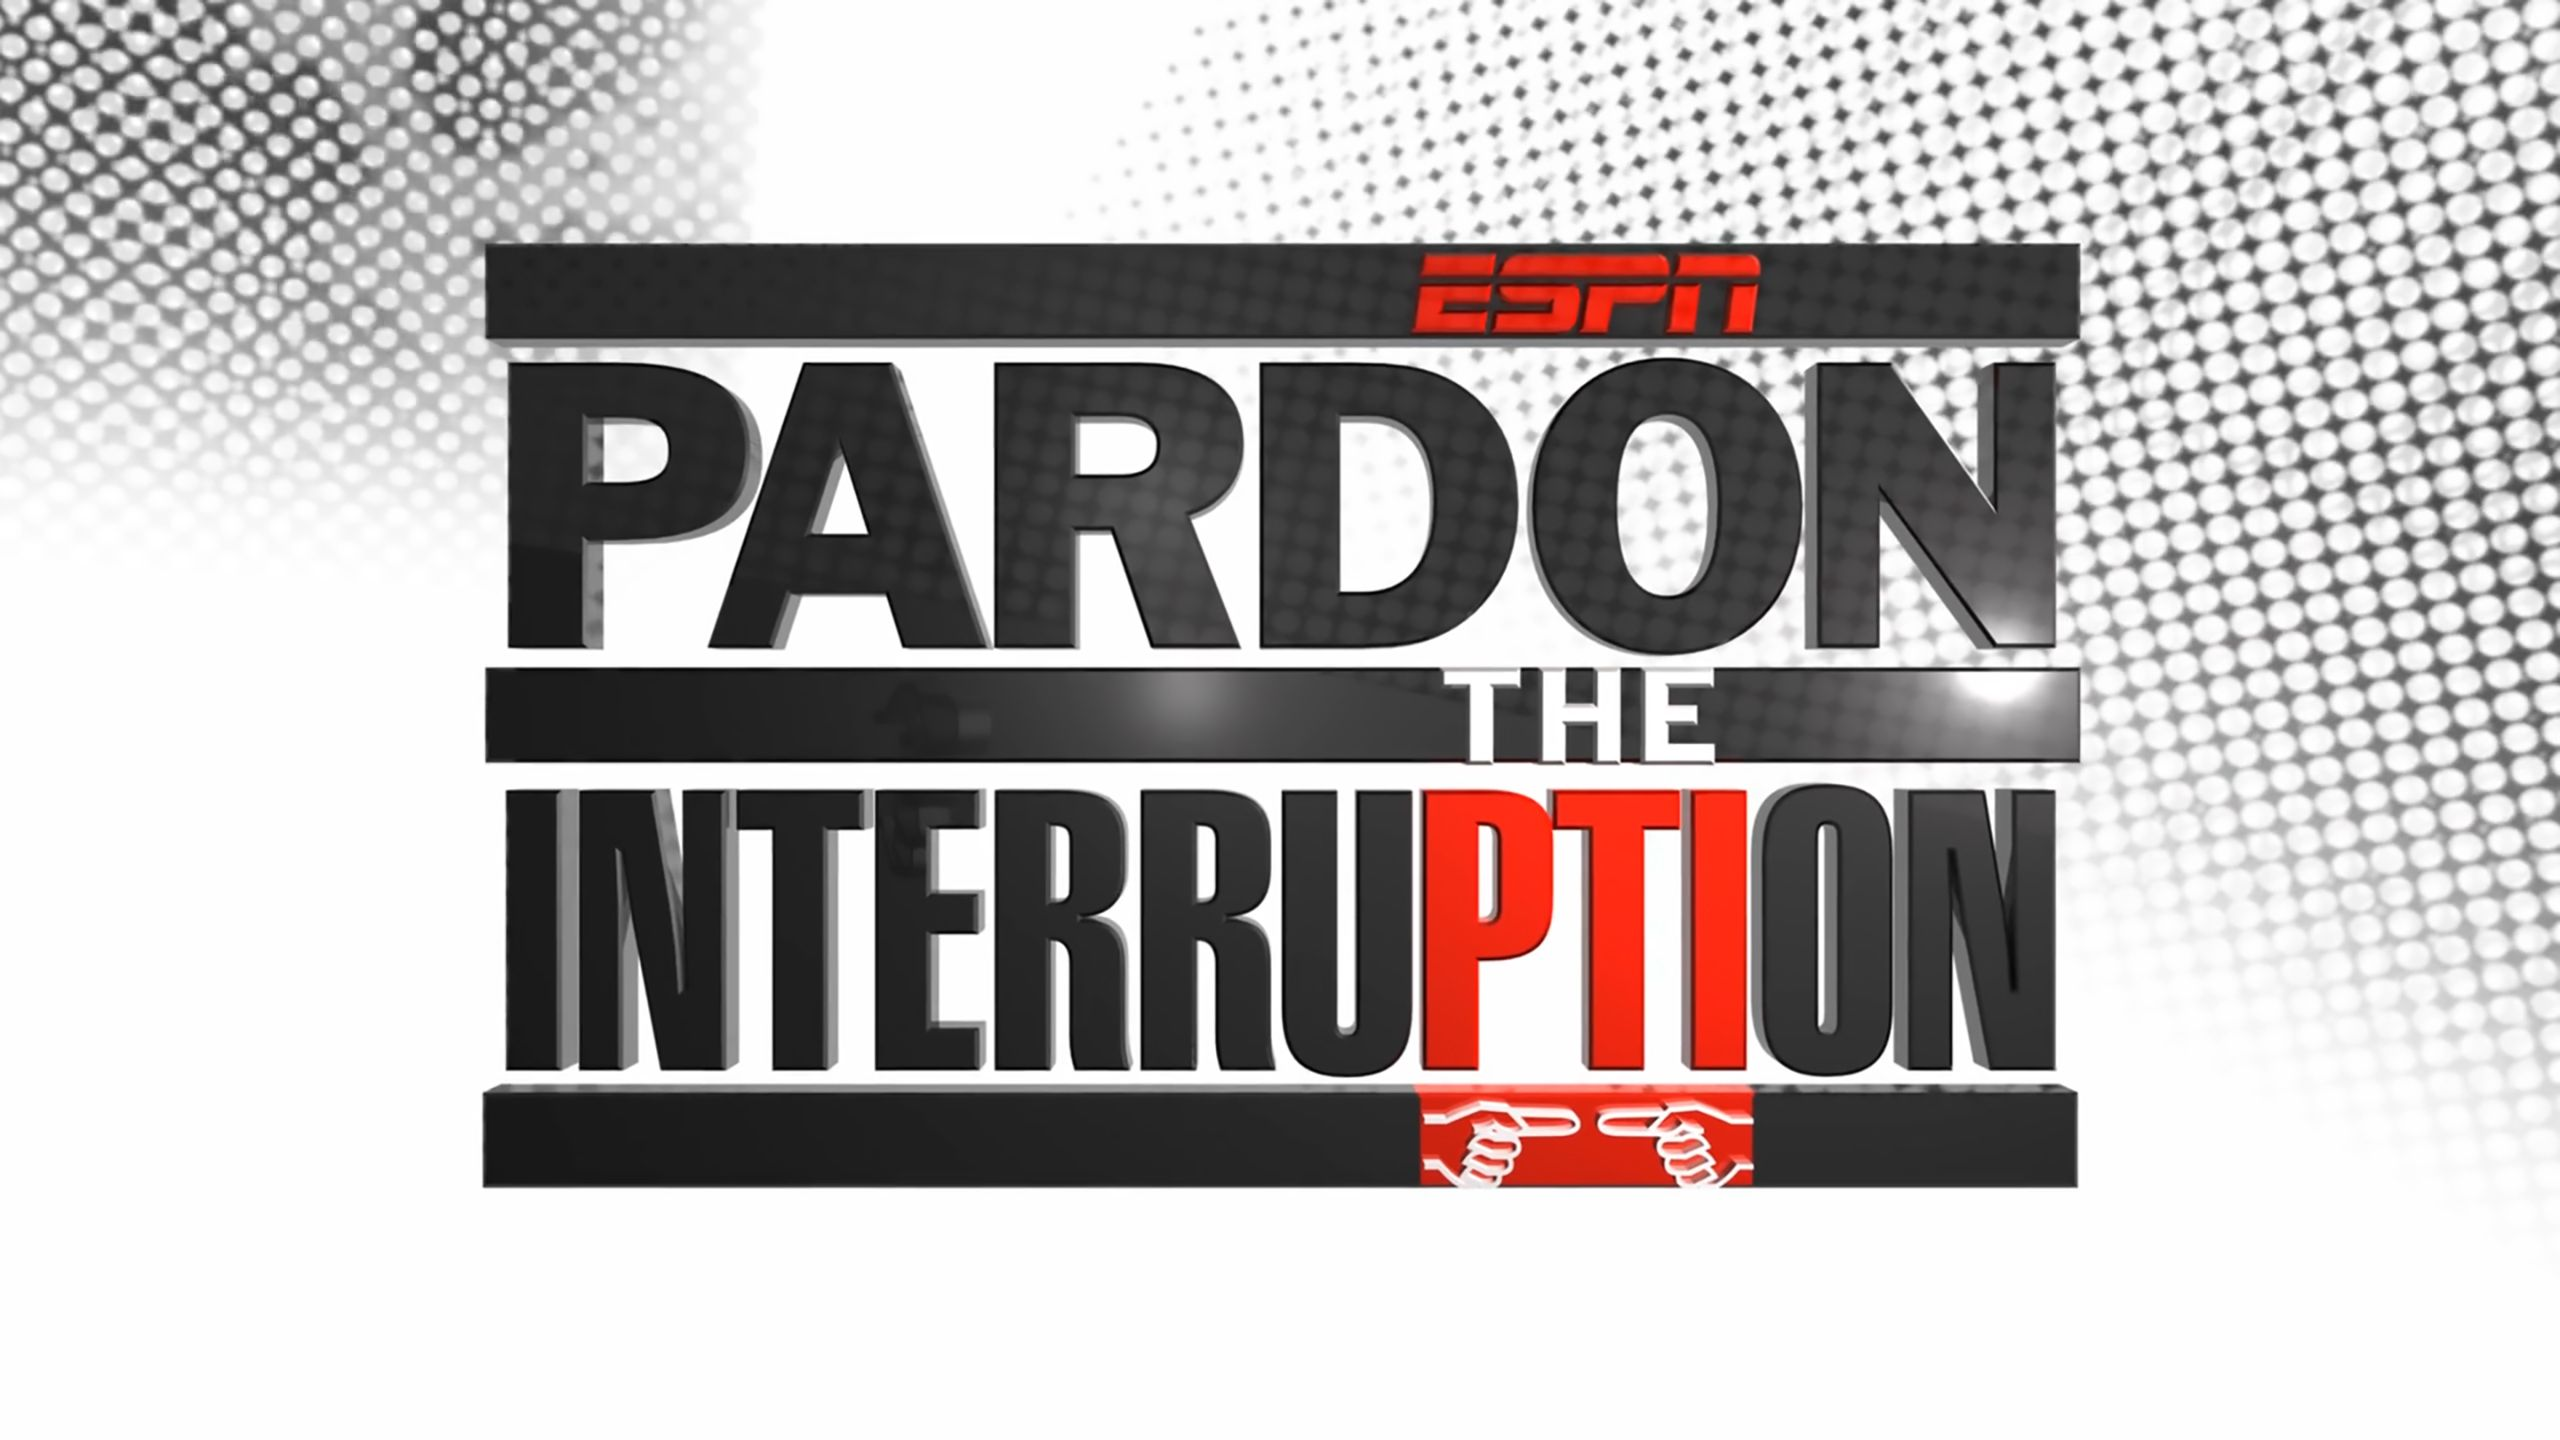 Mon, 1/22 - Pardon The Interruption